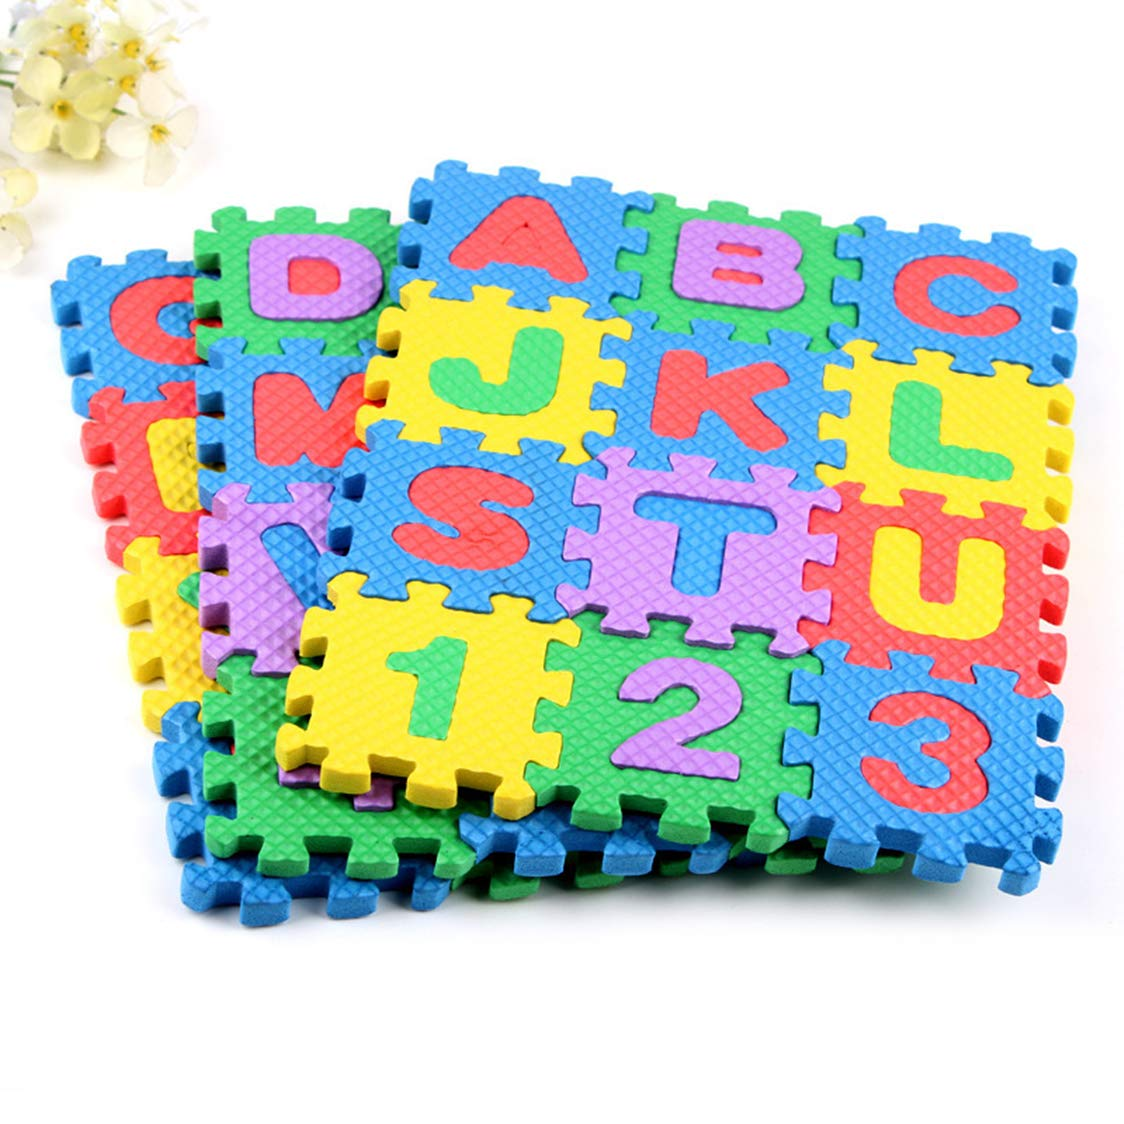 SHUO 36PCS Kids Foam Mat Non Toxic Crawl Mat Baby Tiles Play Puzzle Mat with Softer Thicker EVA Foam Mat for Kids Toddlers Babies (6 6CM)